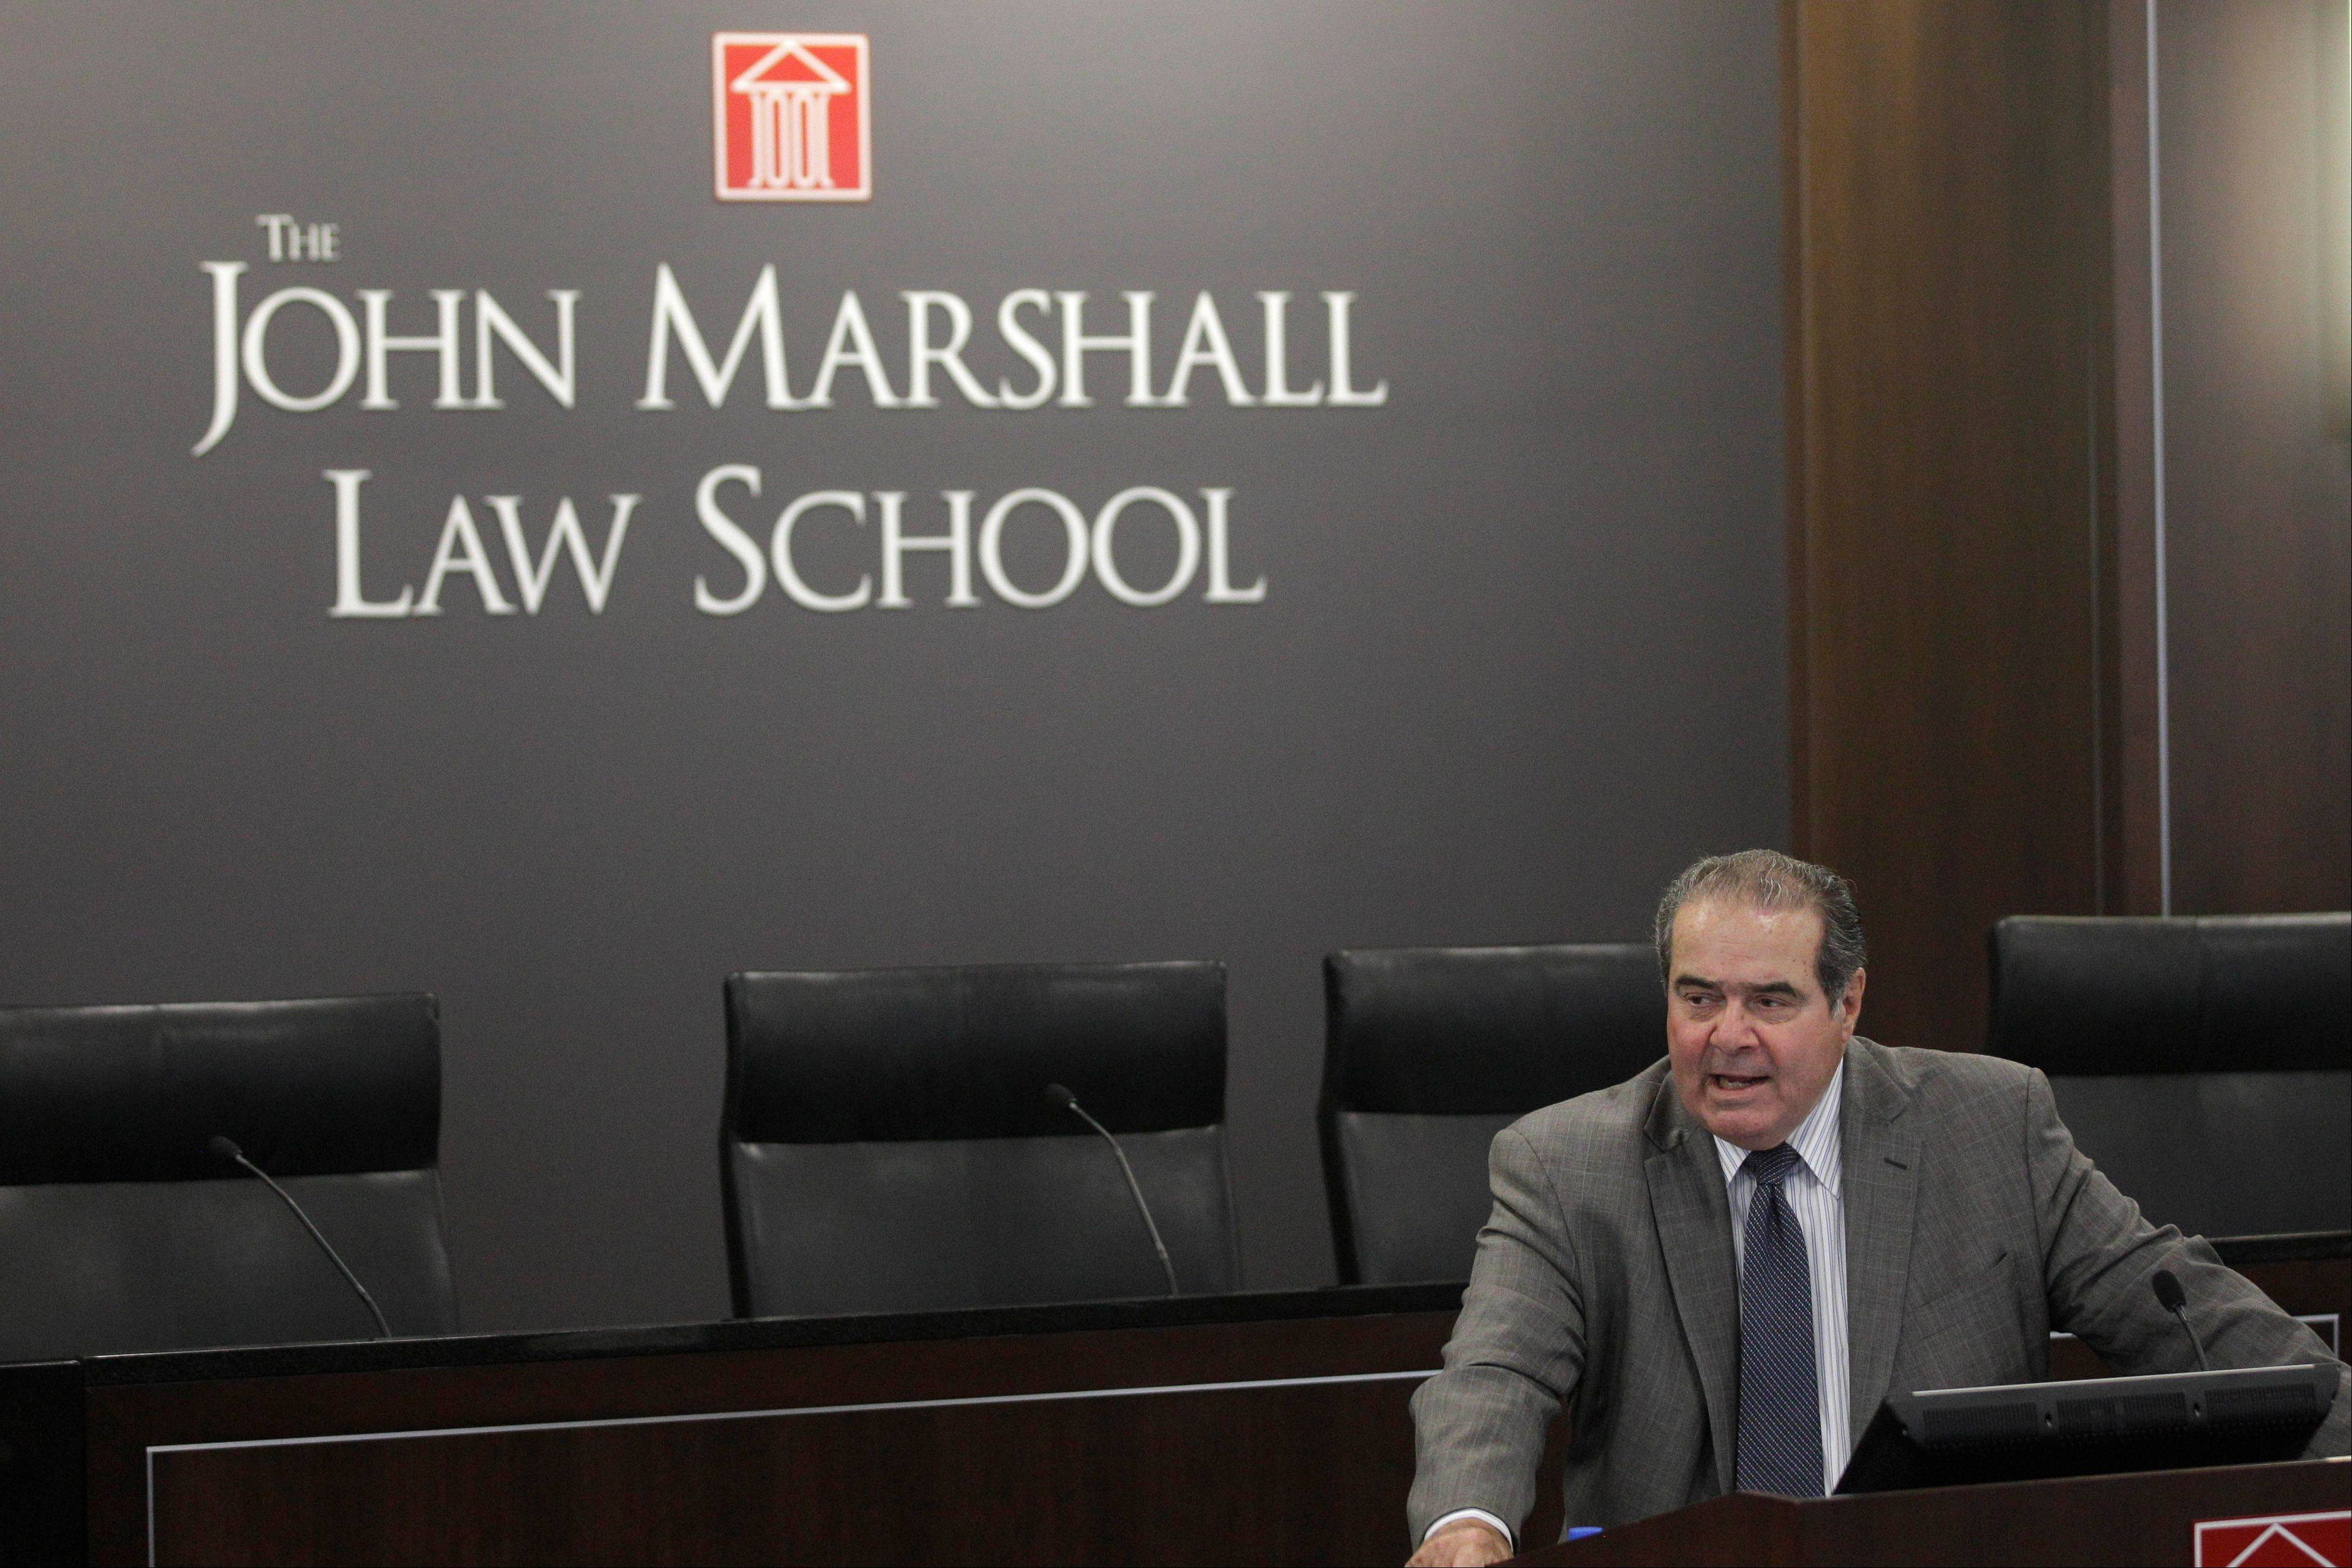 Supreme Court Justice Antonin Scalia speaks Friday during a ceremony naming a courtroom at The John Marshall Law School in Chicago after former Supreme Court Justice Arthur J. Goldberg.